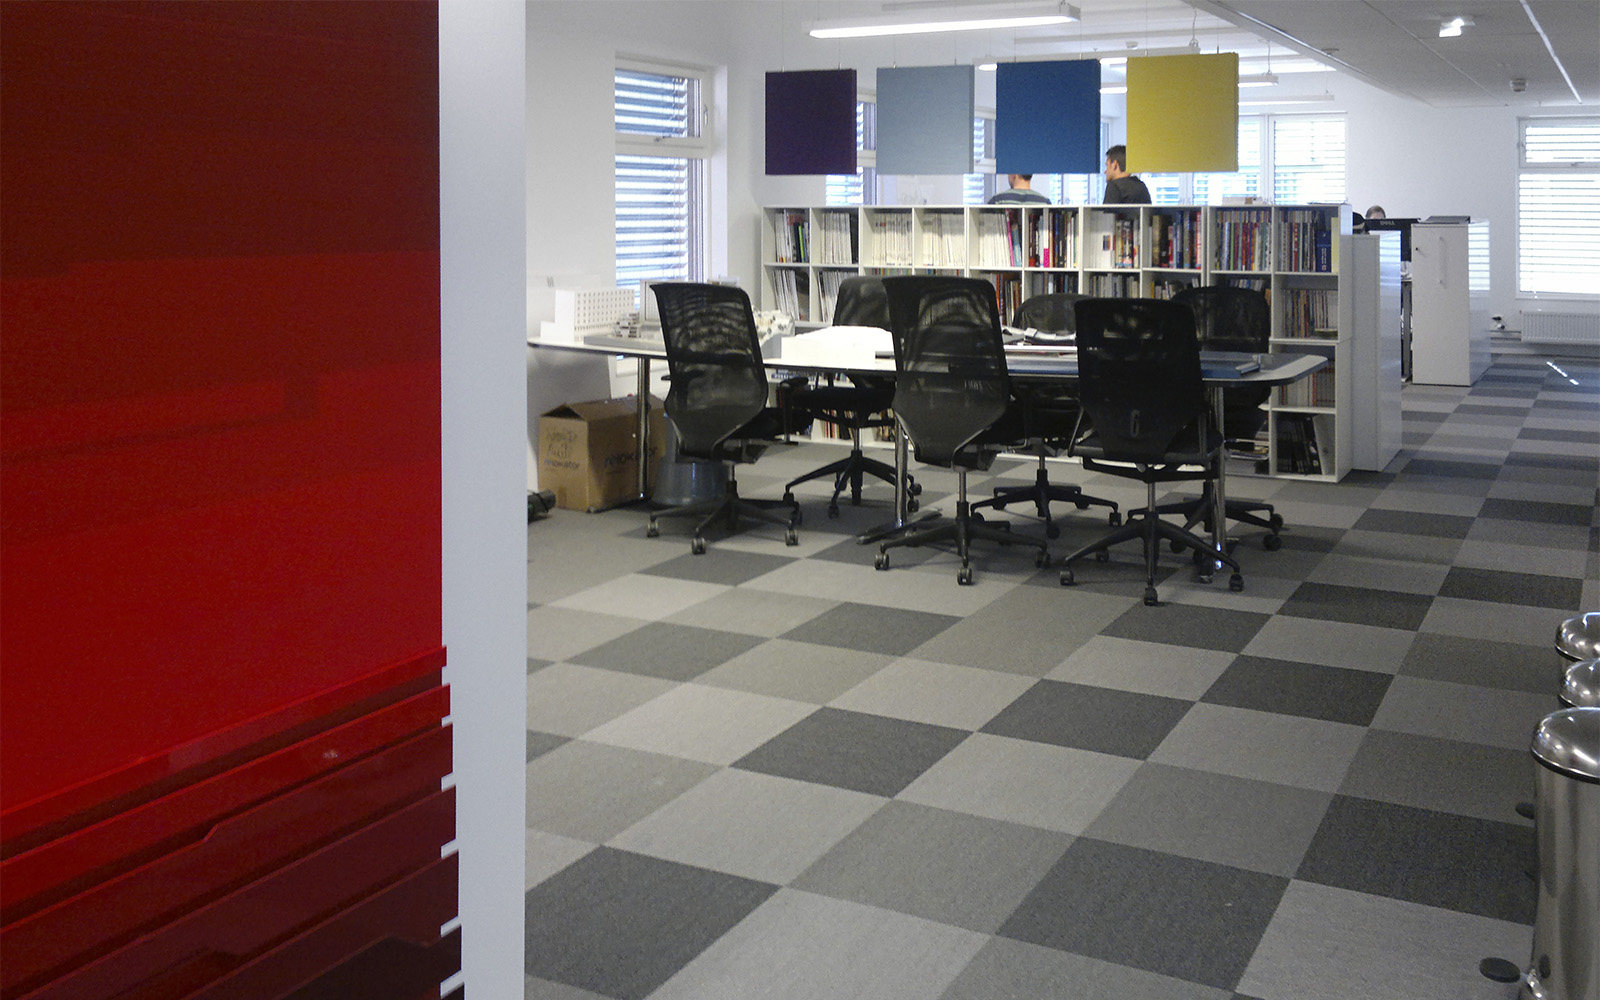 office carpet tiles by ege in checkered grey